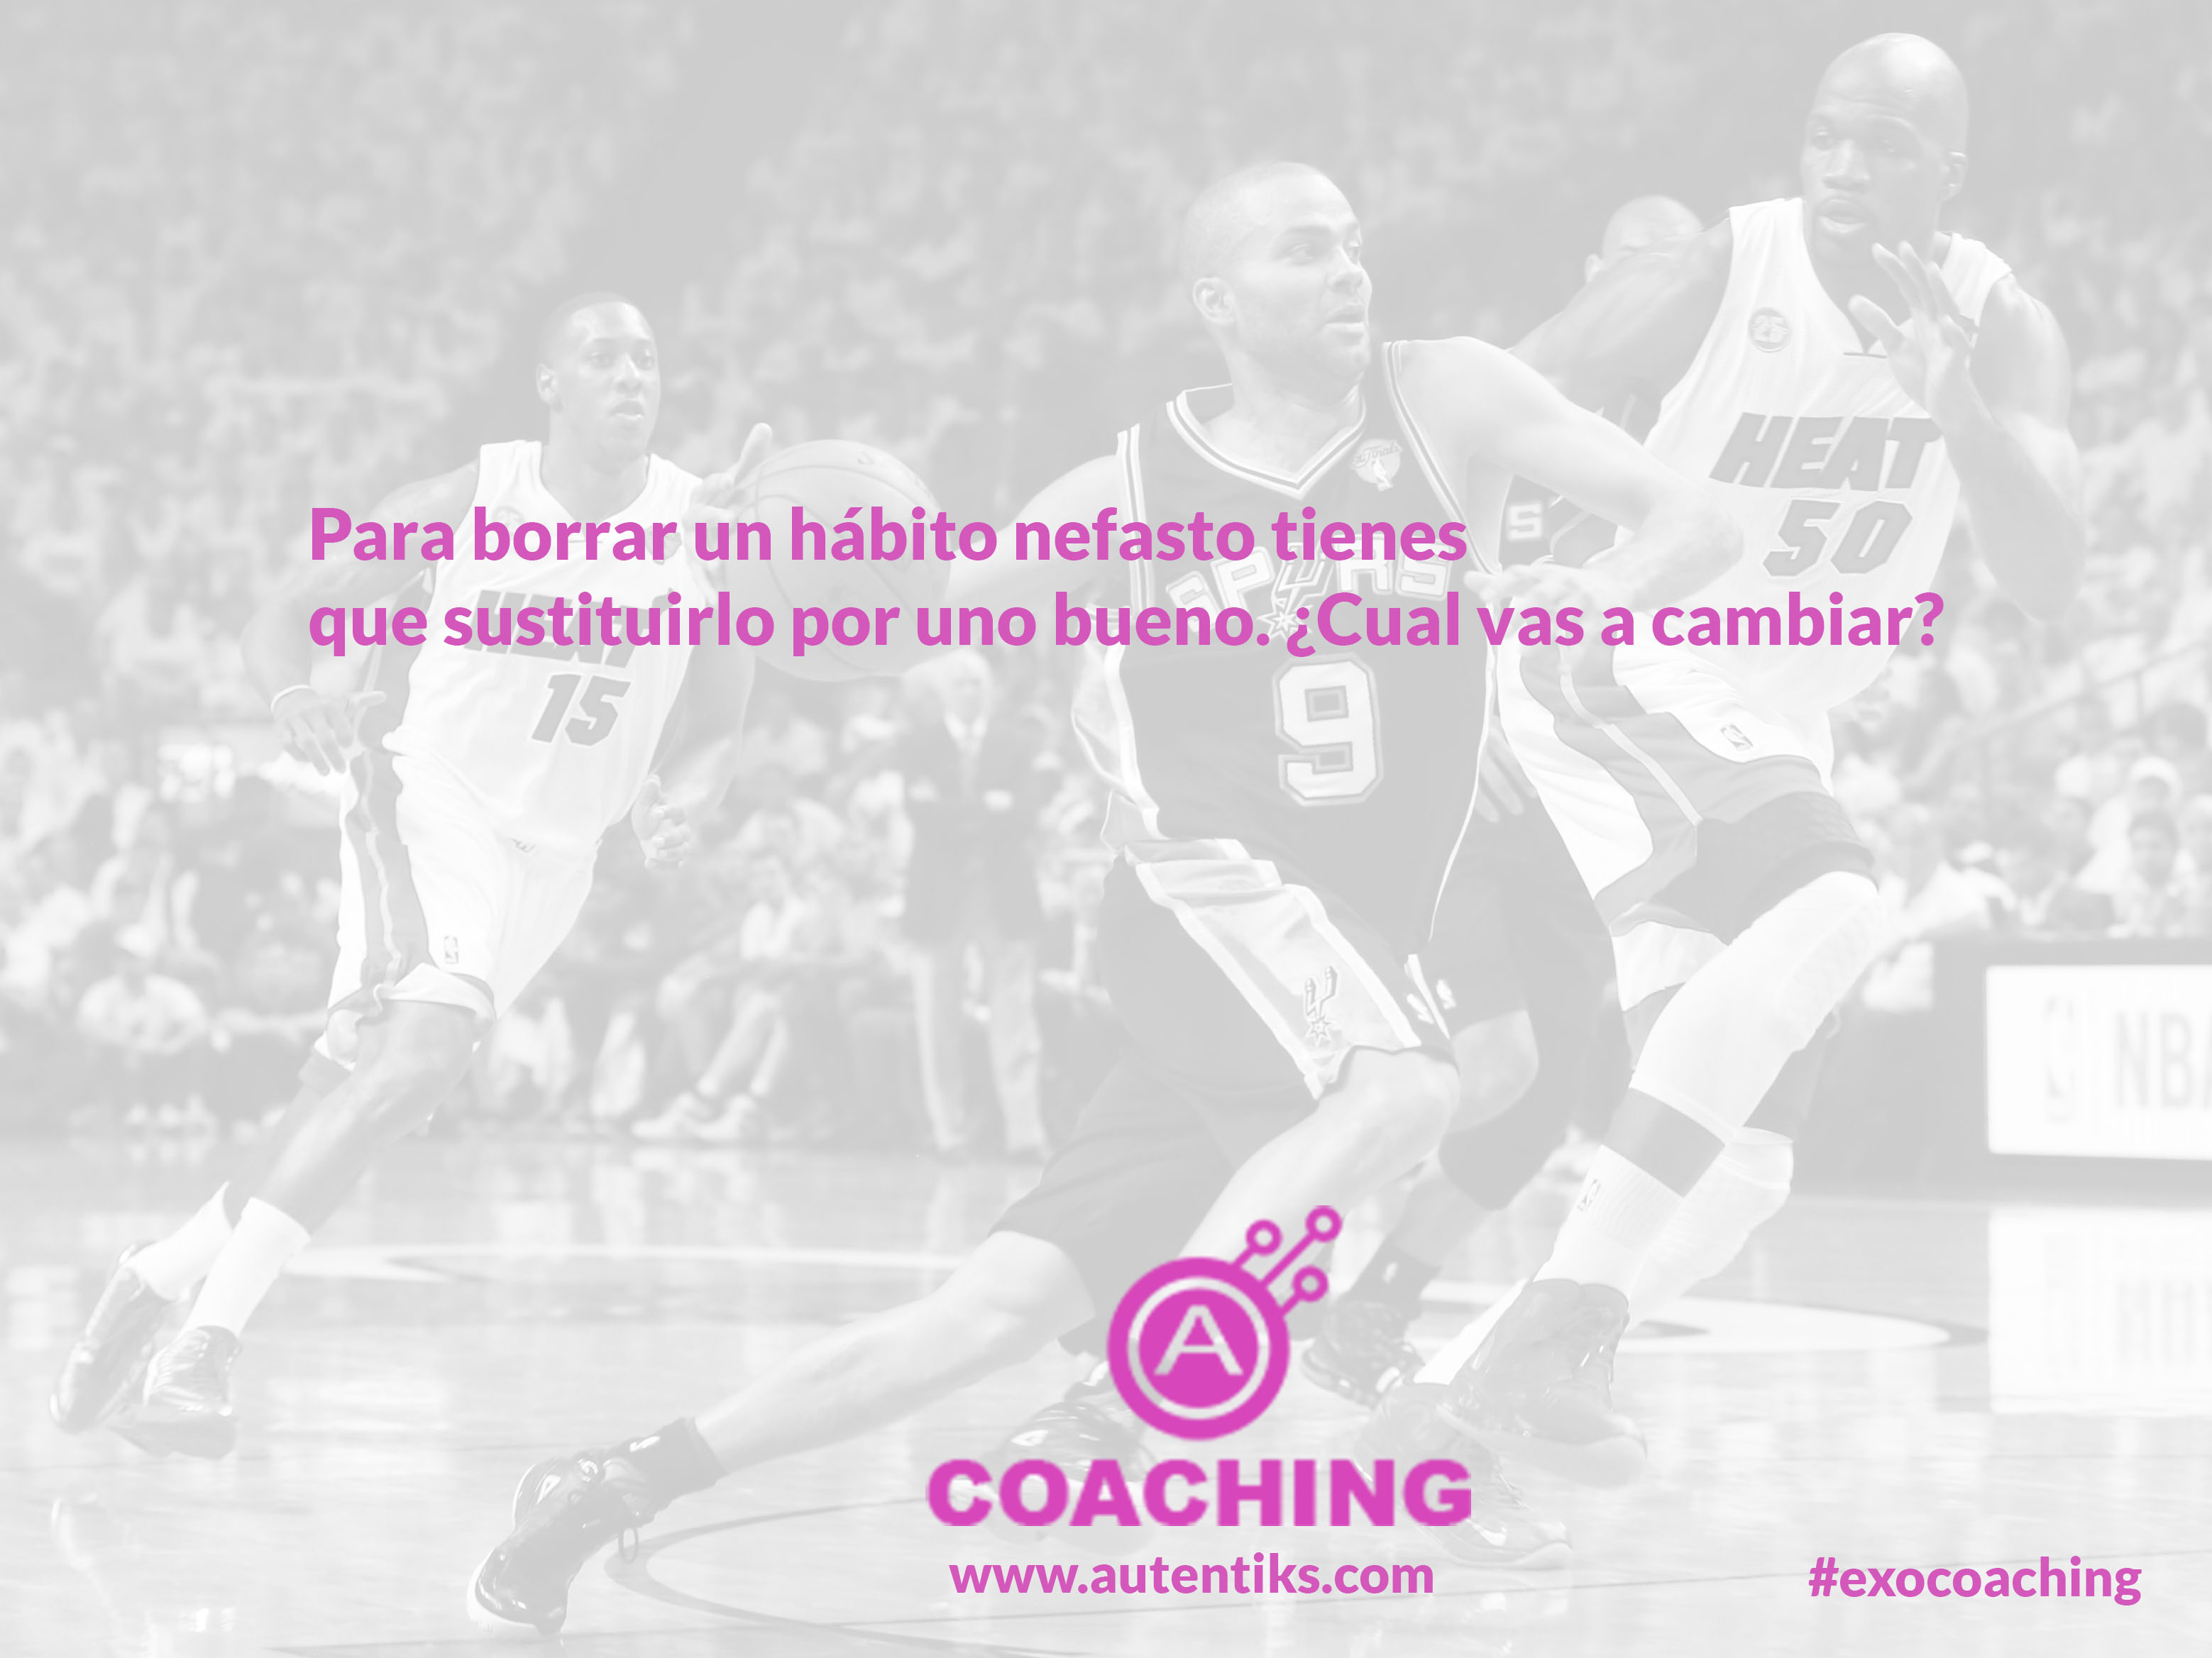 Semana 9 – Exercice de Coaching